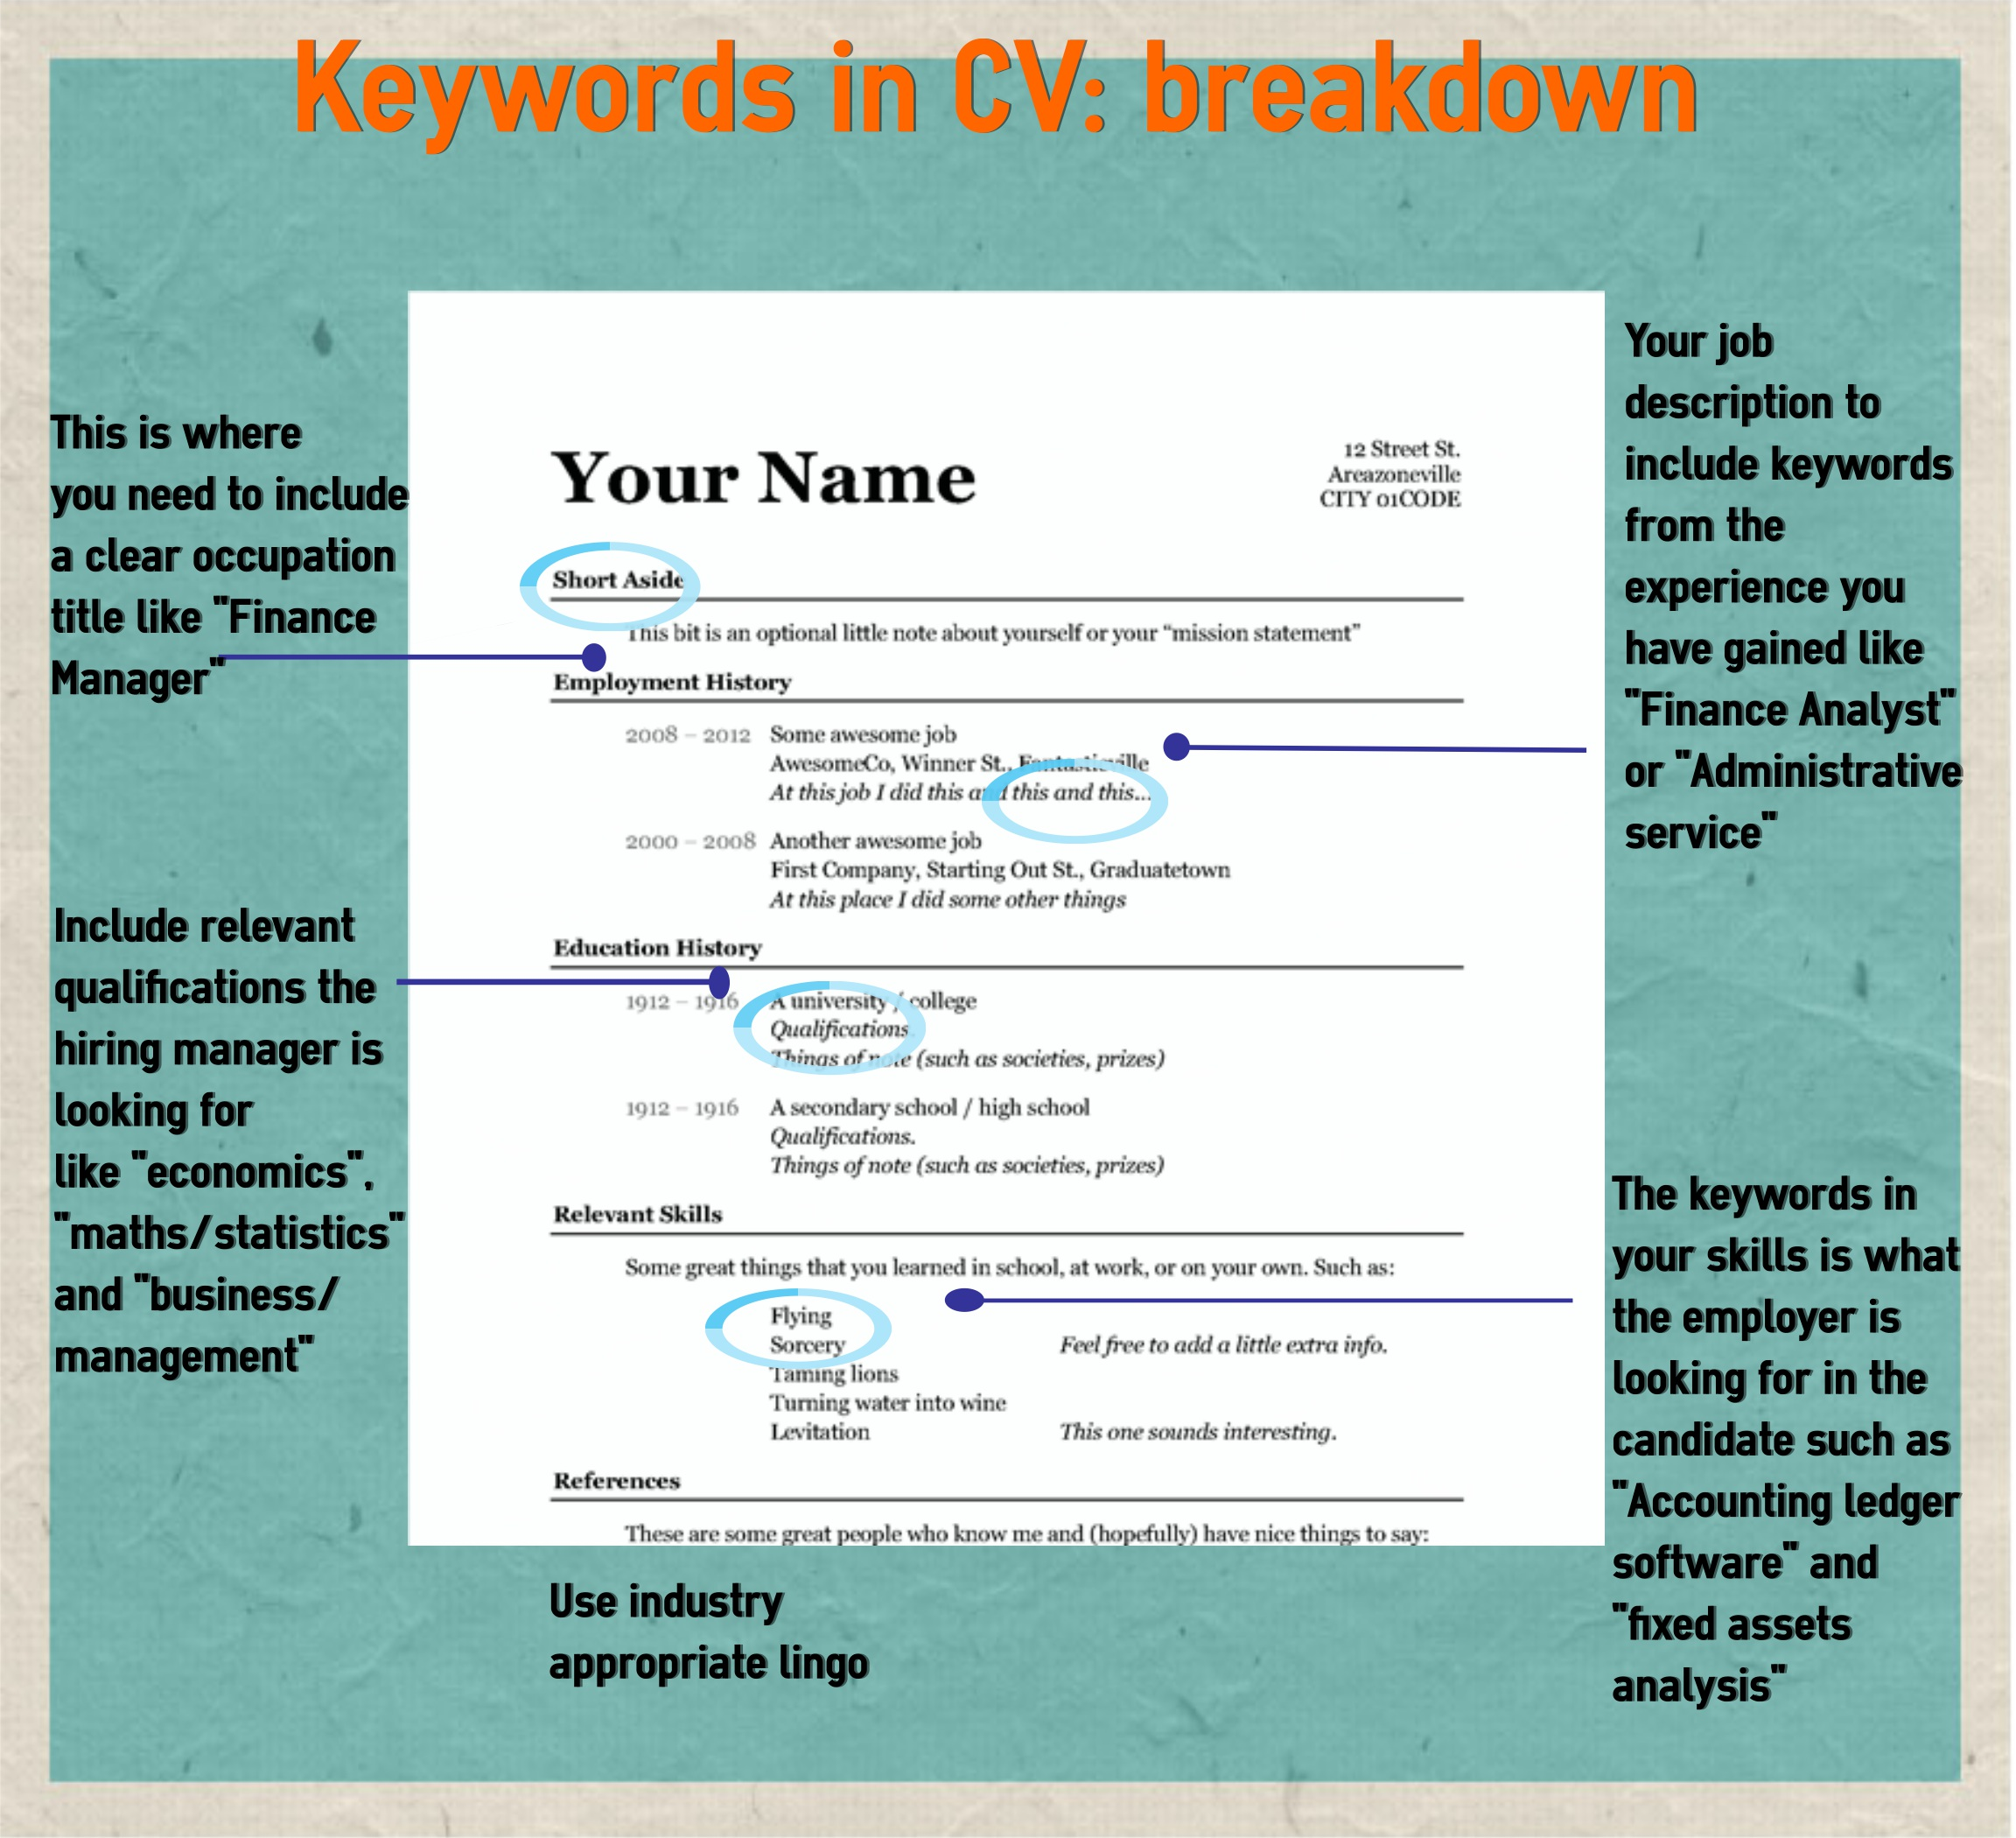 keywords for cv - Selo.l-ink.co